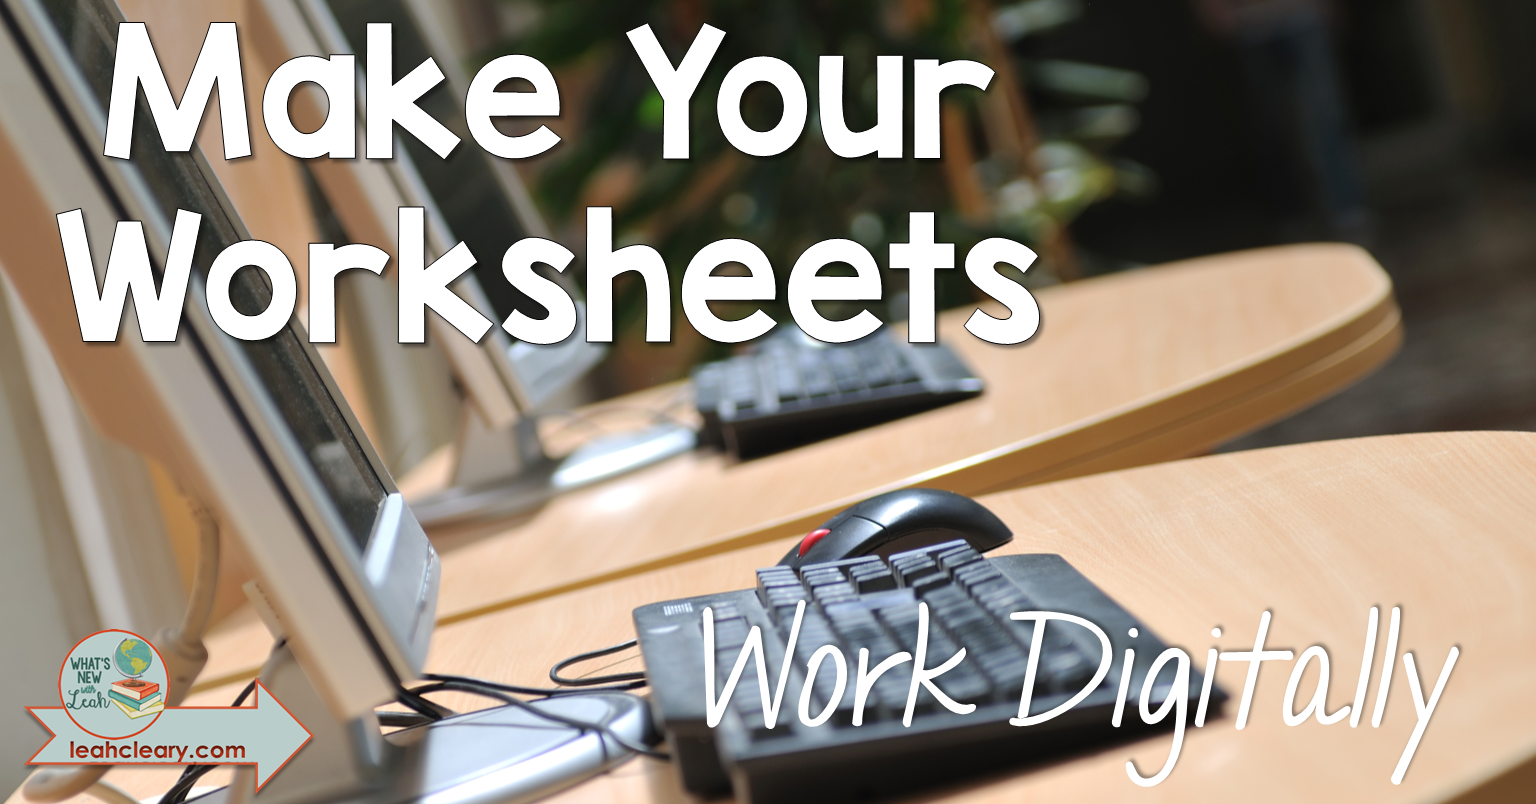 Make Your Worksheets Work Digitally - Leah Cleary: Secondary